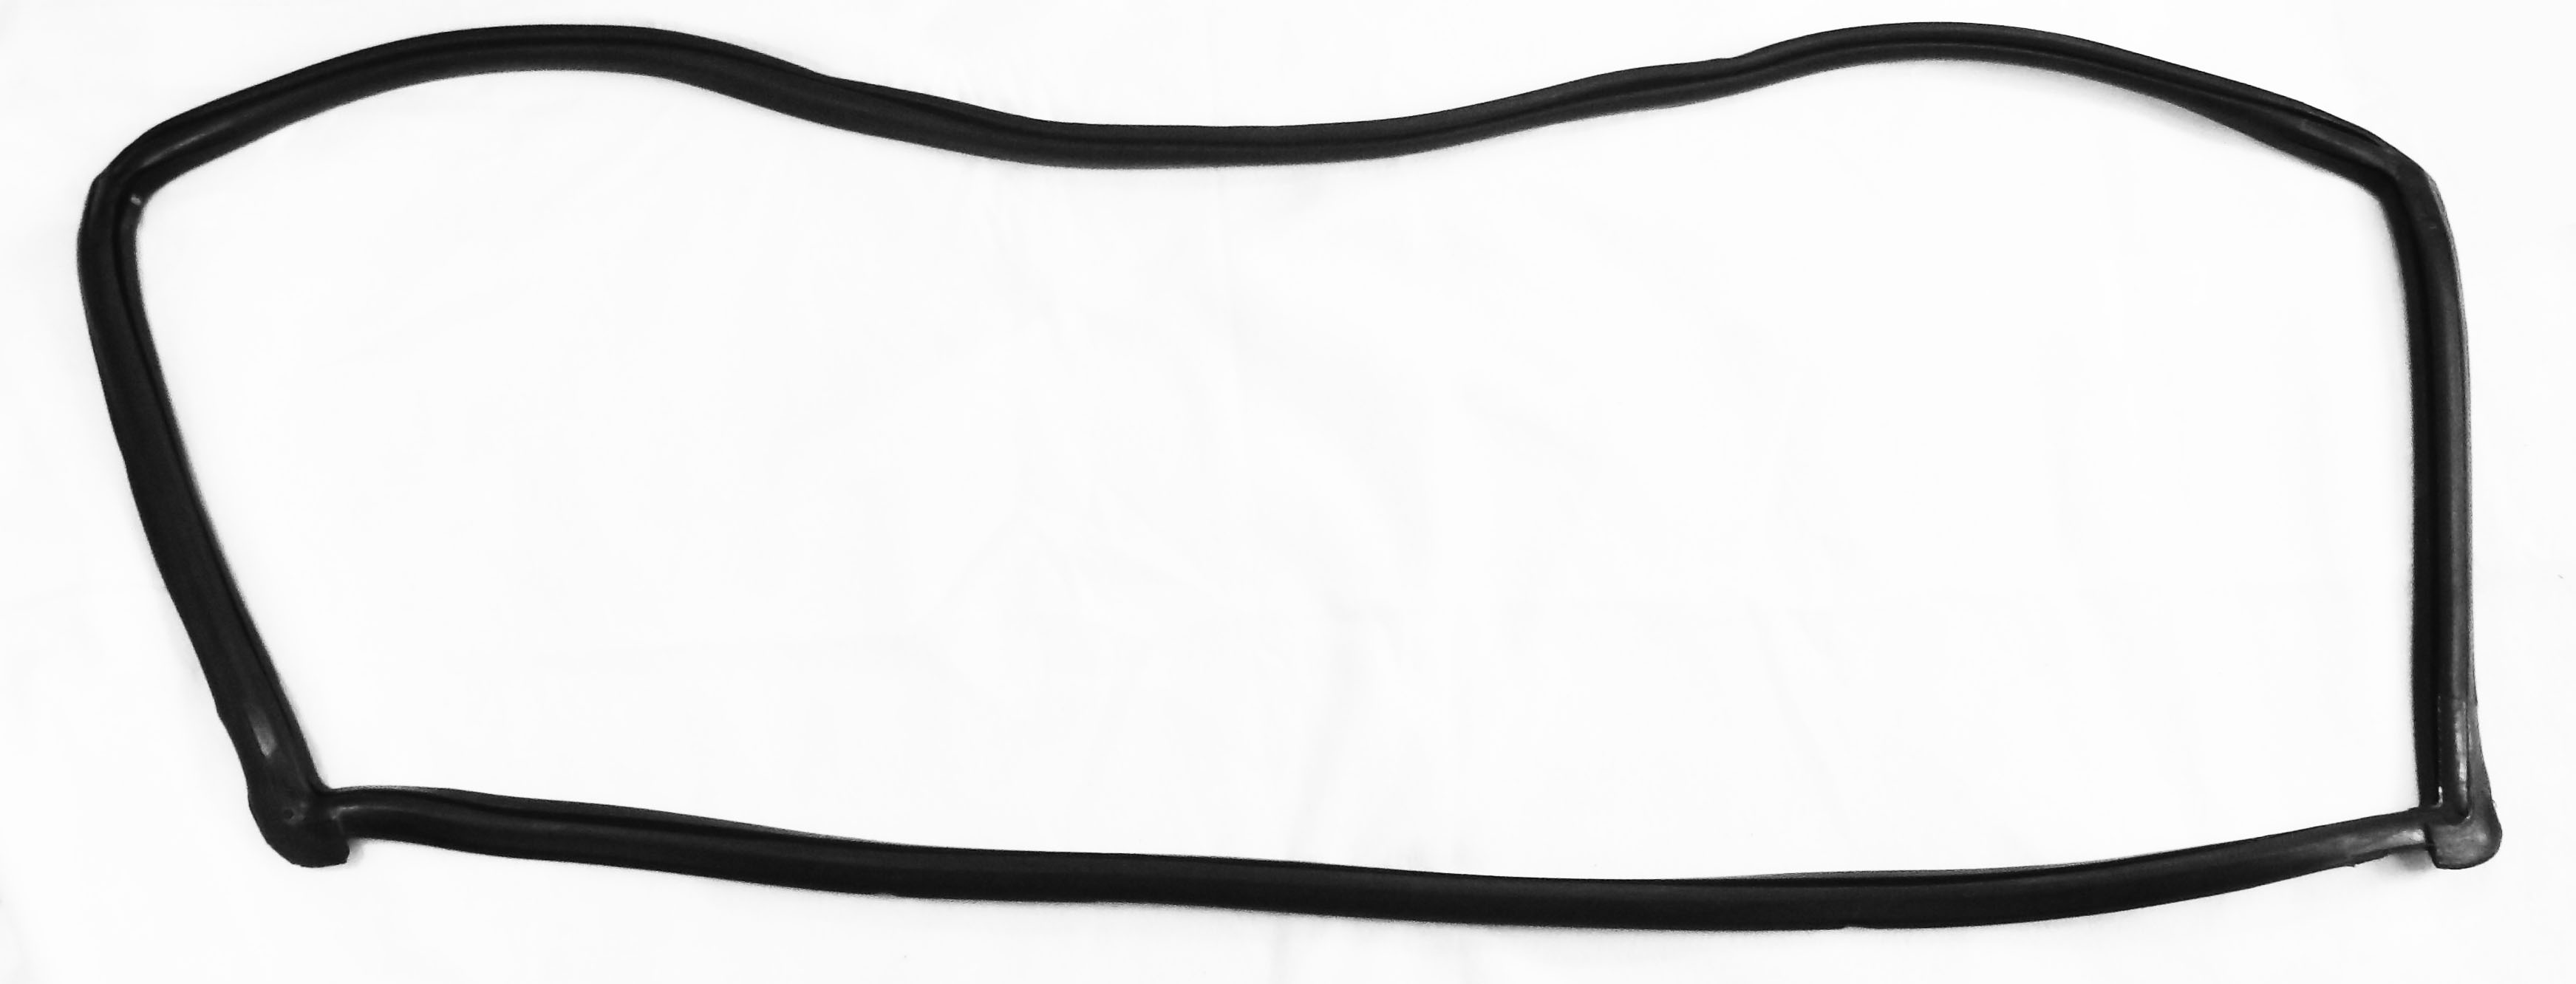 Windshield Channel Seal For Chevrolet Cars